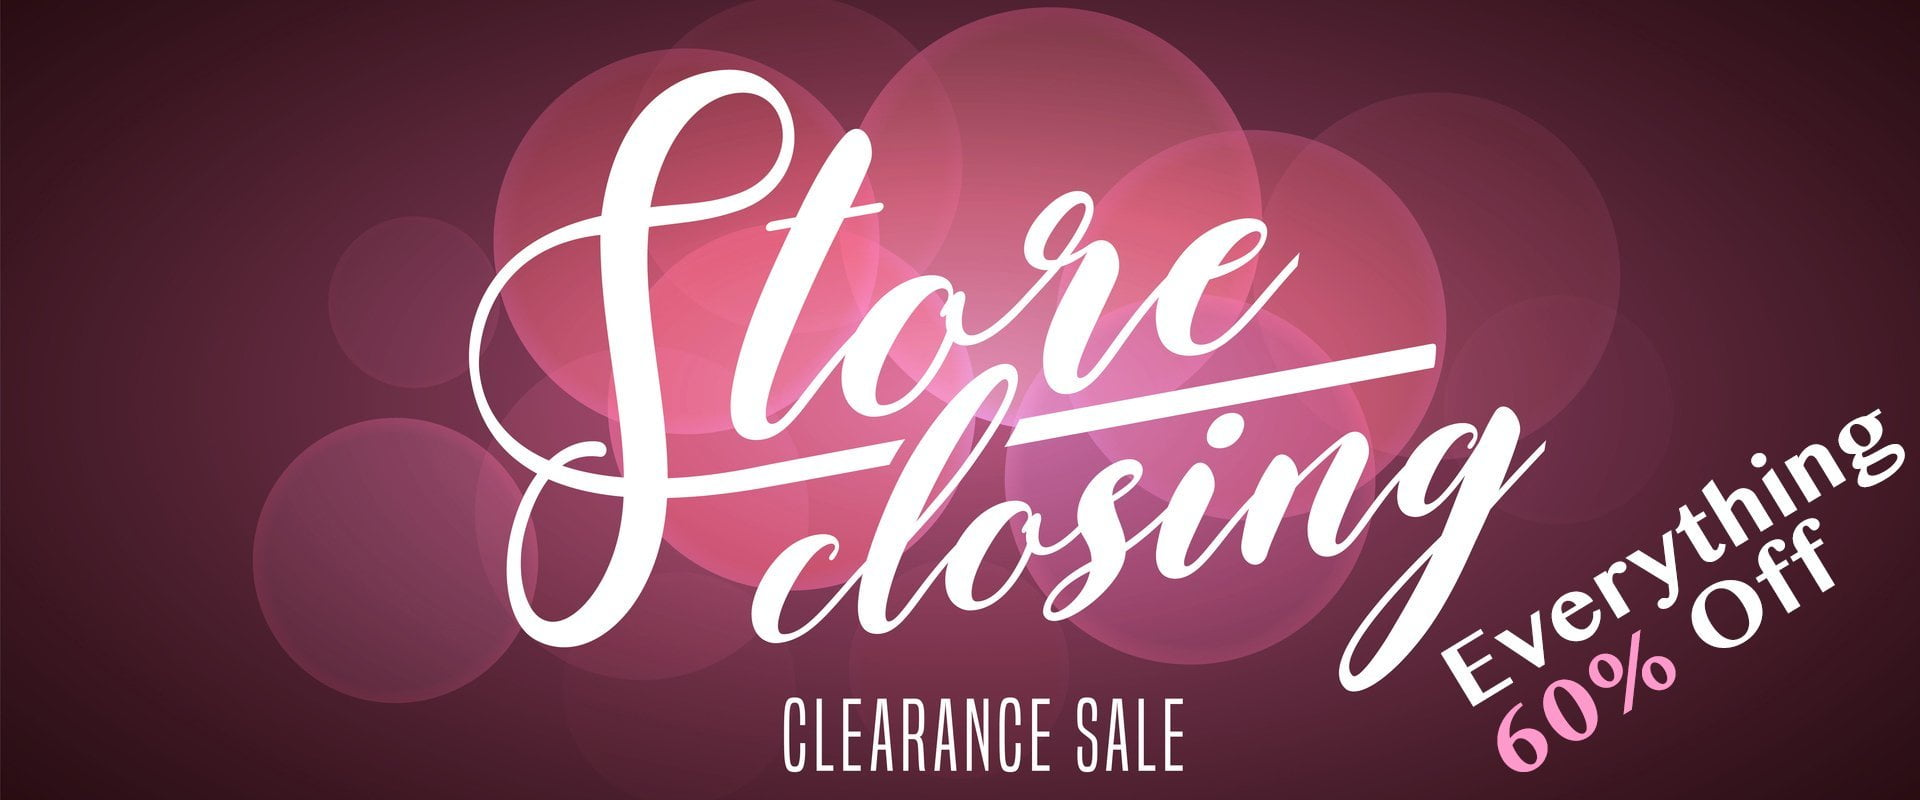 Stock Clearance Sale 60%